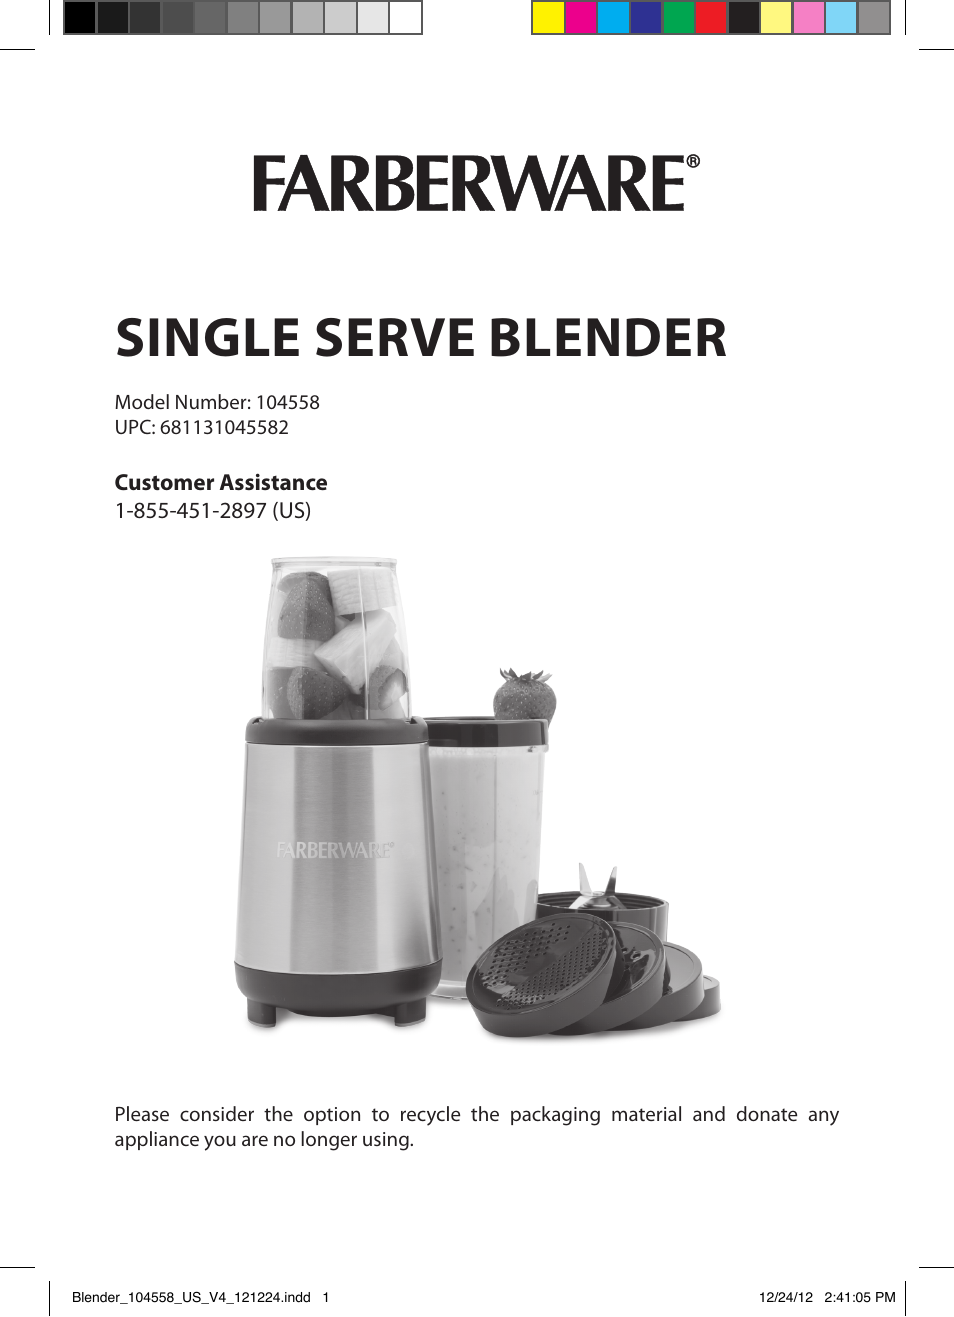 Farberware 104558 17 piece rocket blender user manual 19 for What brand of blender is used on the chew